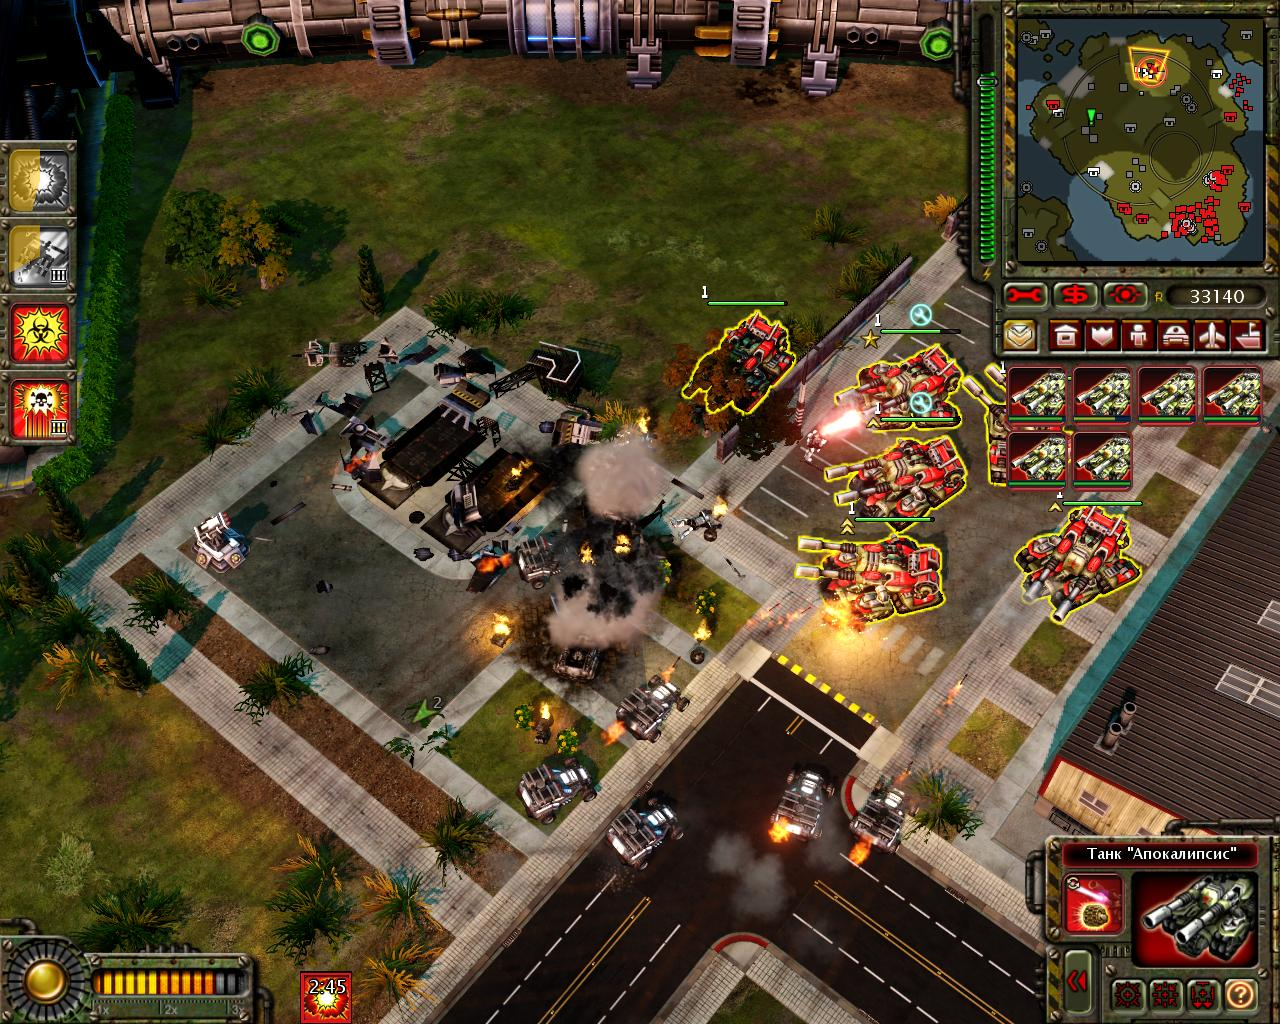 Command & Conquer: Red Alert 3 - Uprising (Steam Key)